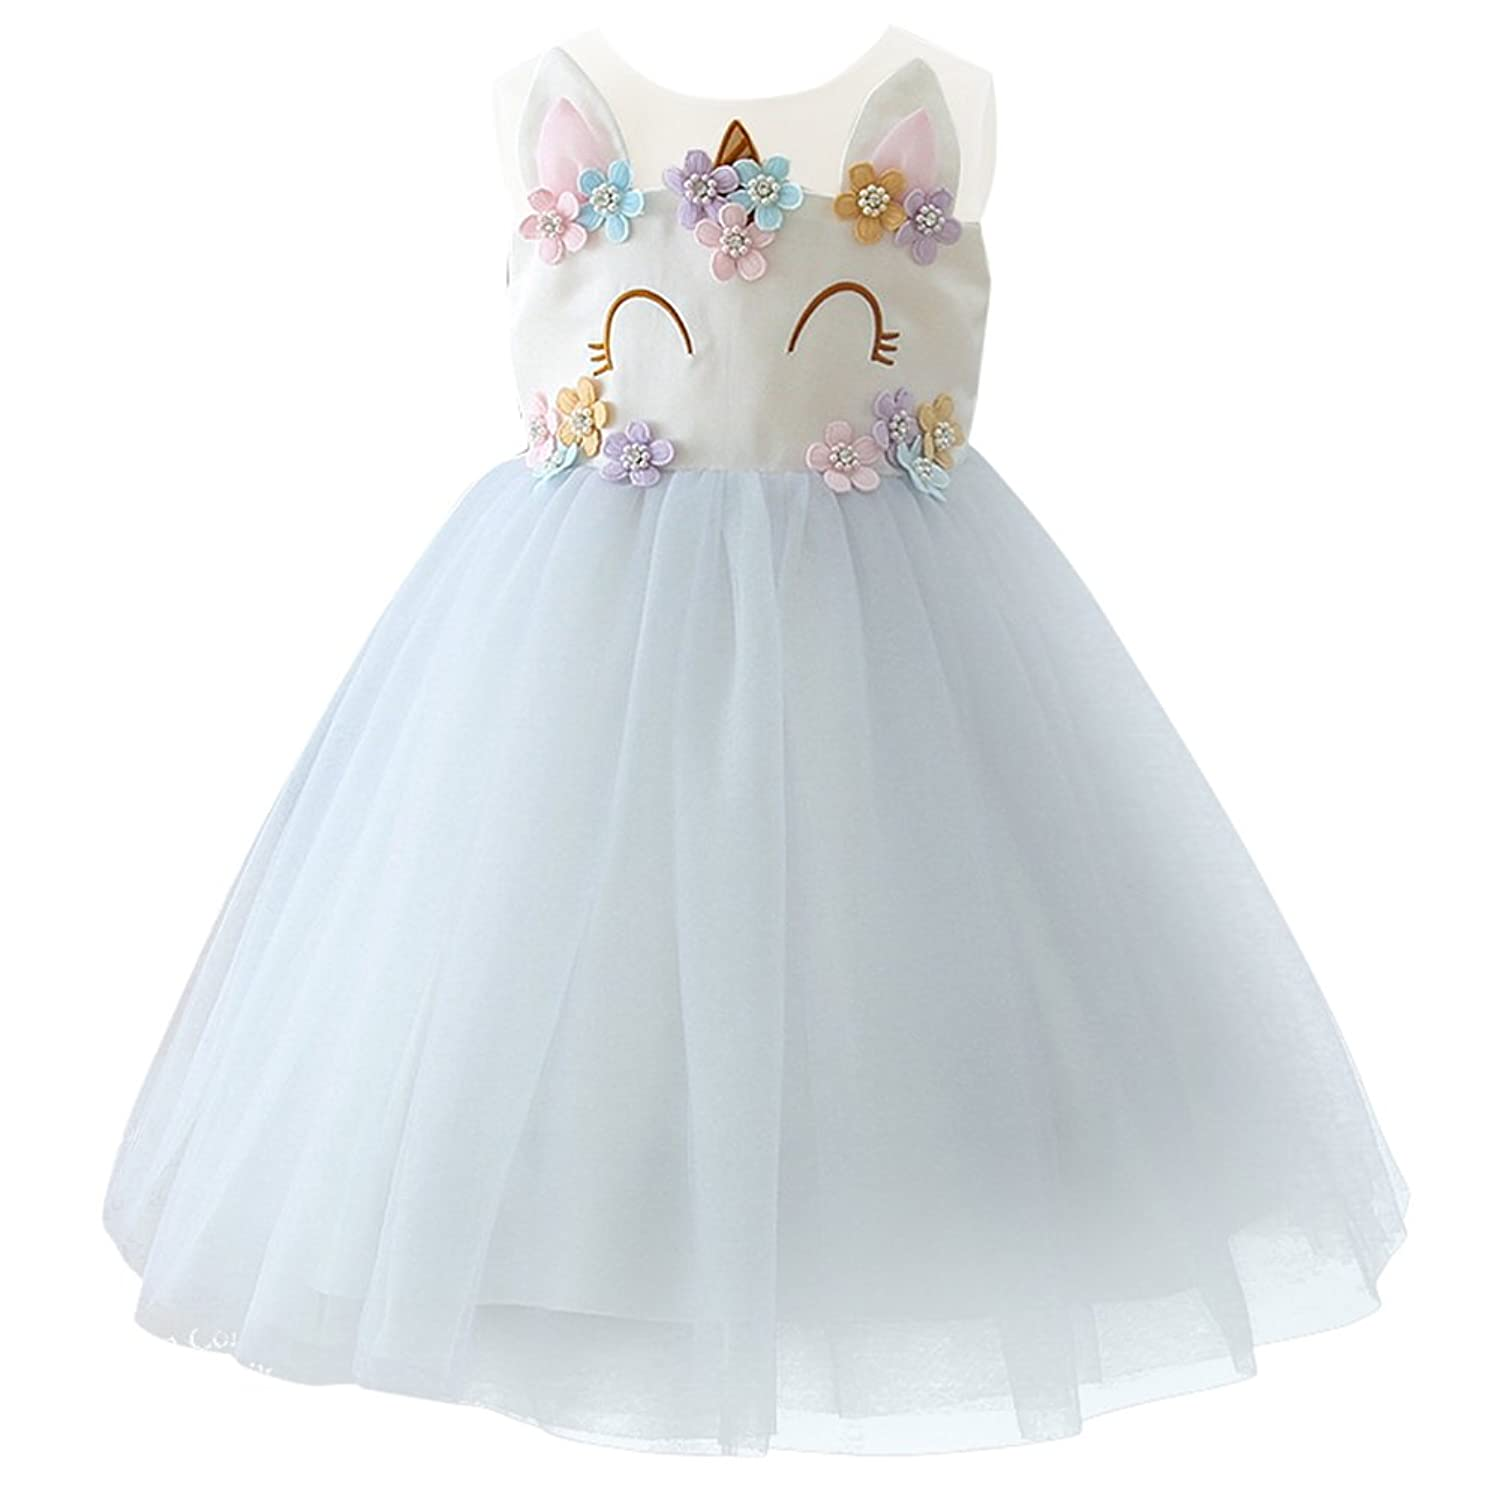 ac3a01bf1a21 IDEAL VOGUE CHOICE:Kids teenagers toddler baby girls summer dress with cute  unicorn appliques colorful flower cosplay birthday party fancy lovely tutu  dress ...